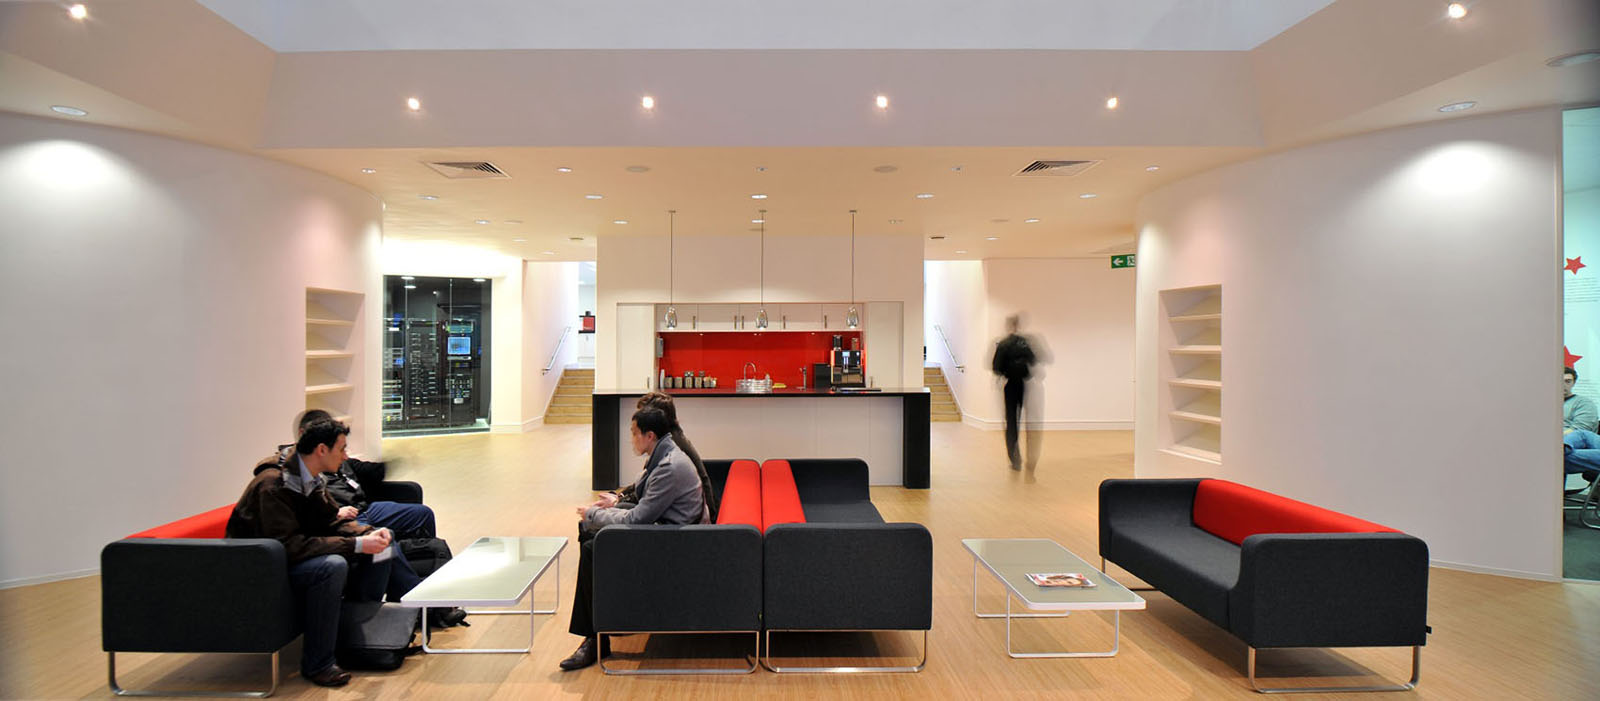 Inspiring british office interior design at rackspace idesignarch interior design - Office interior ...